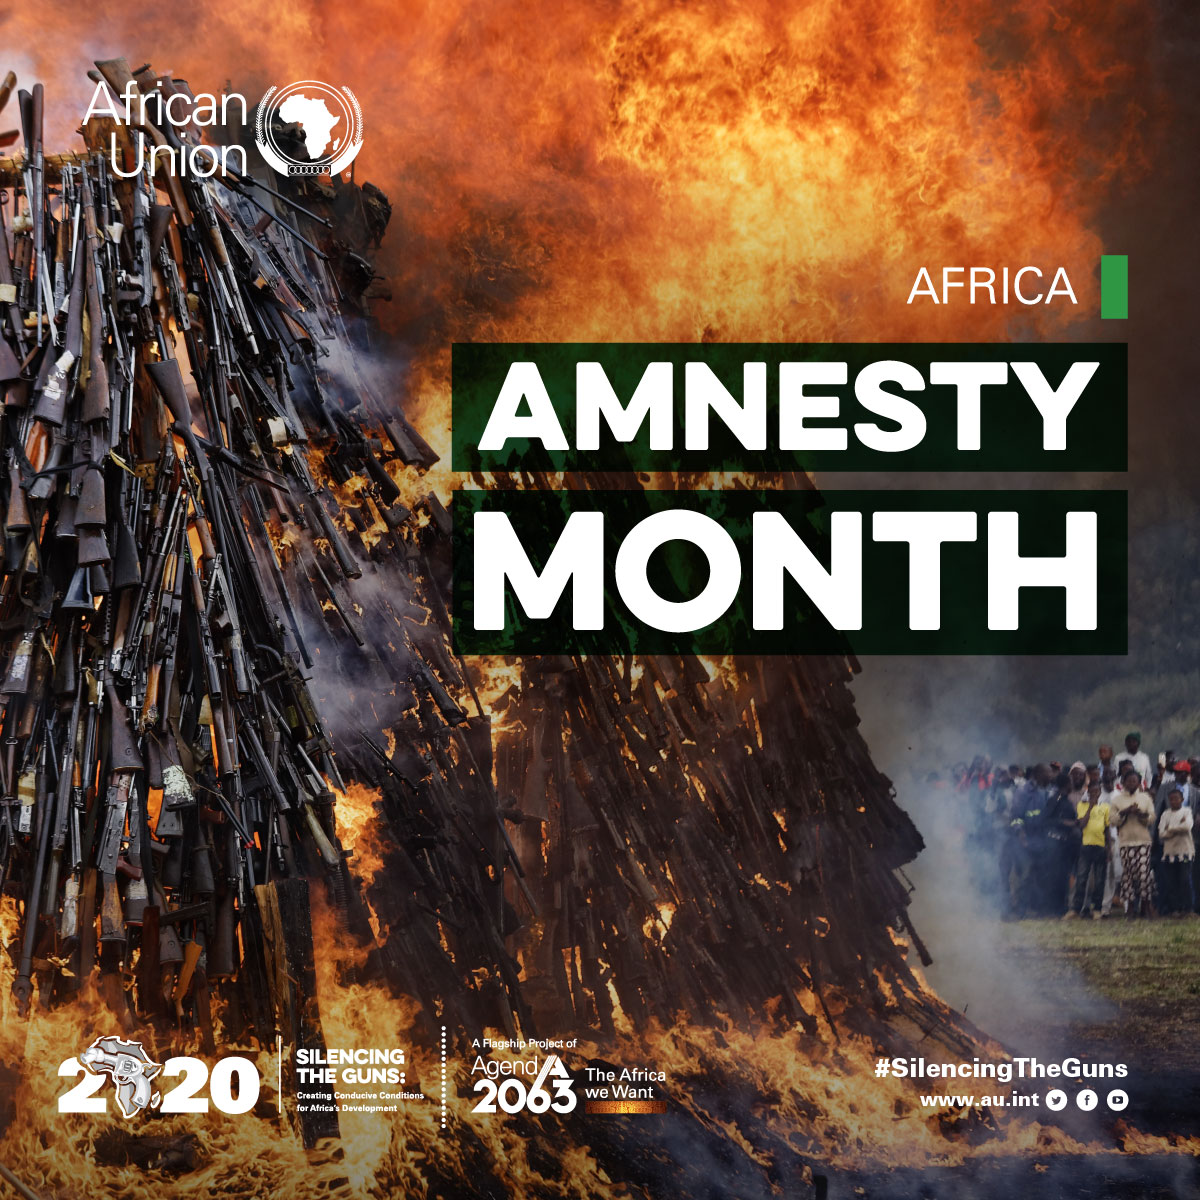 "Statement by Ambassador Smaïl Chergui Commissioner for Peace and Security on Africa Amnesty month: implementation of the AU theme of the year 2020 ""Silencing the Guns: creating conducive conditions for Africa's development"""